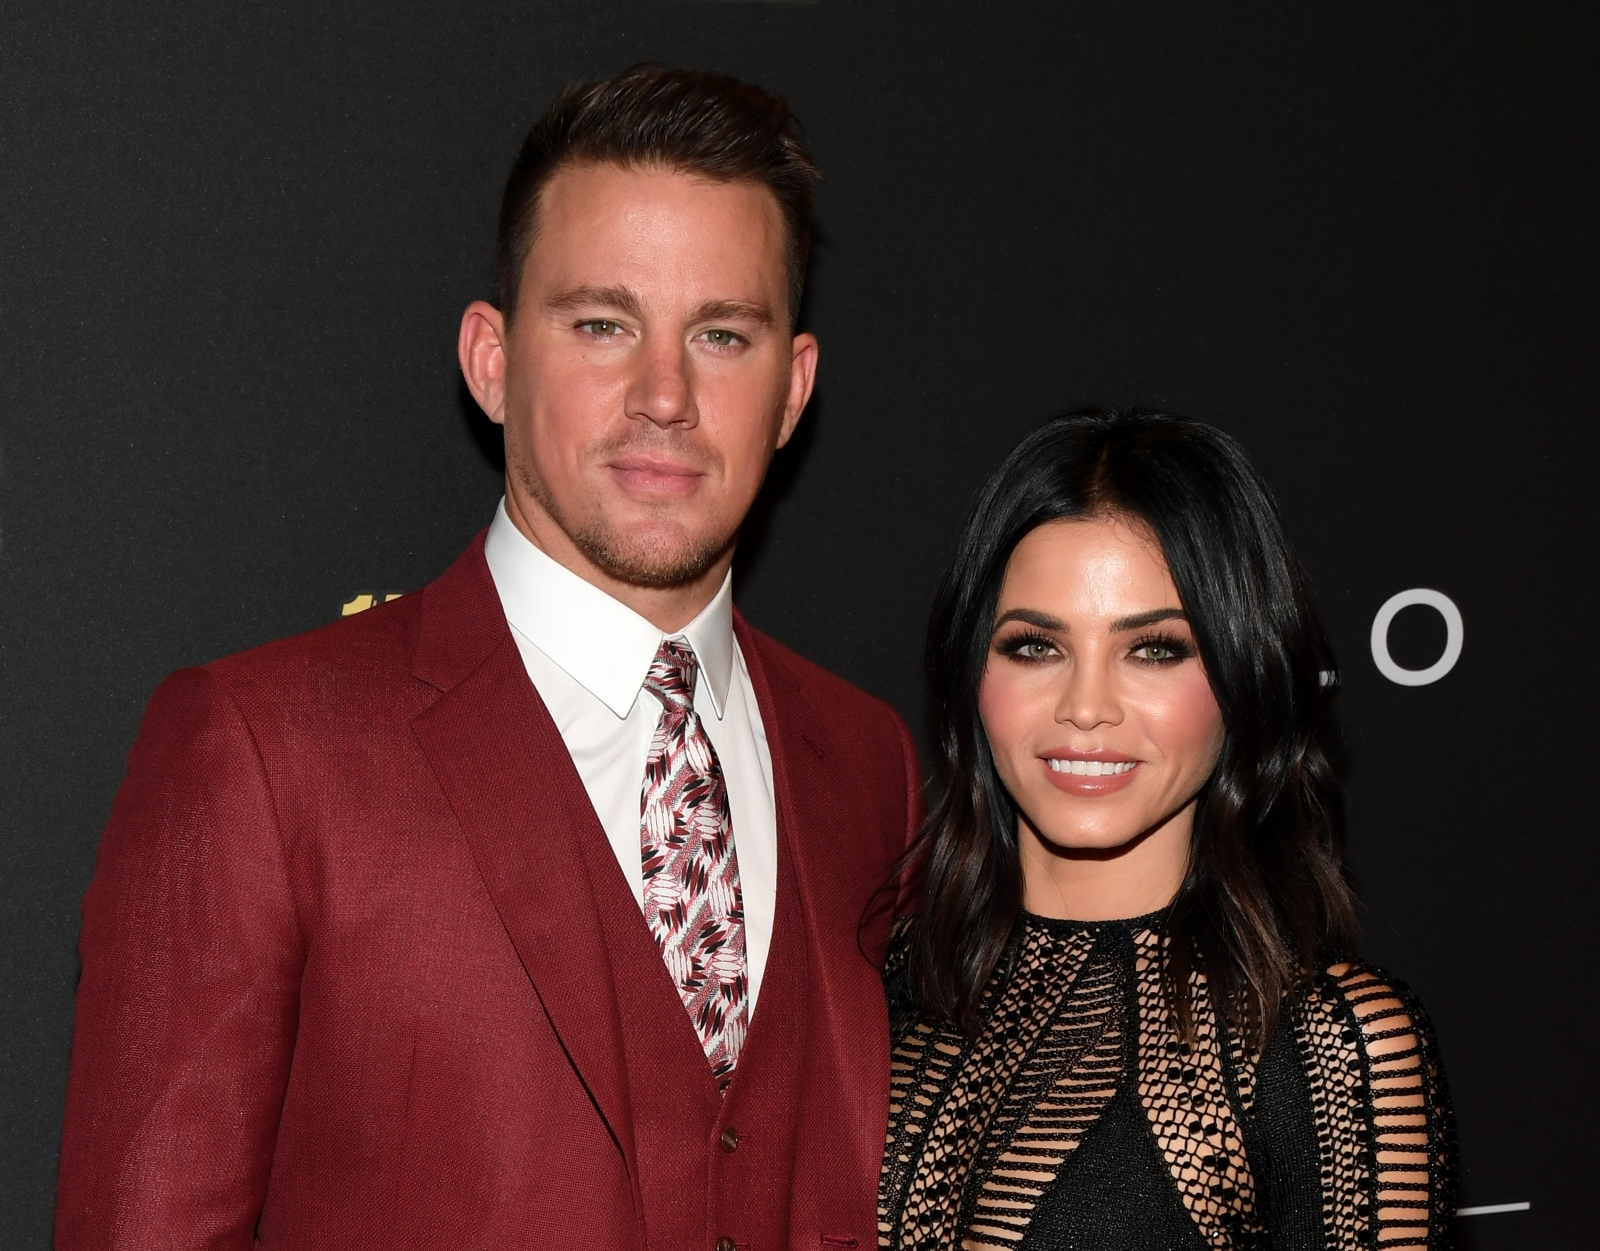 Channing Tatum's daughter hates the Step Up movies